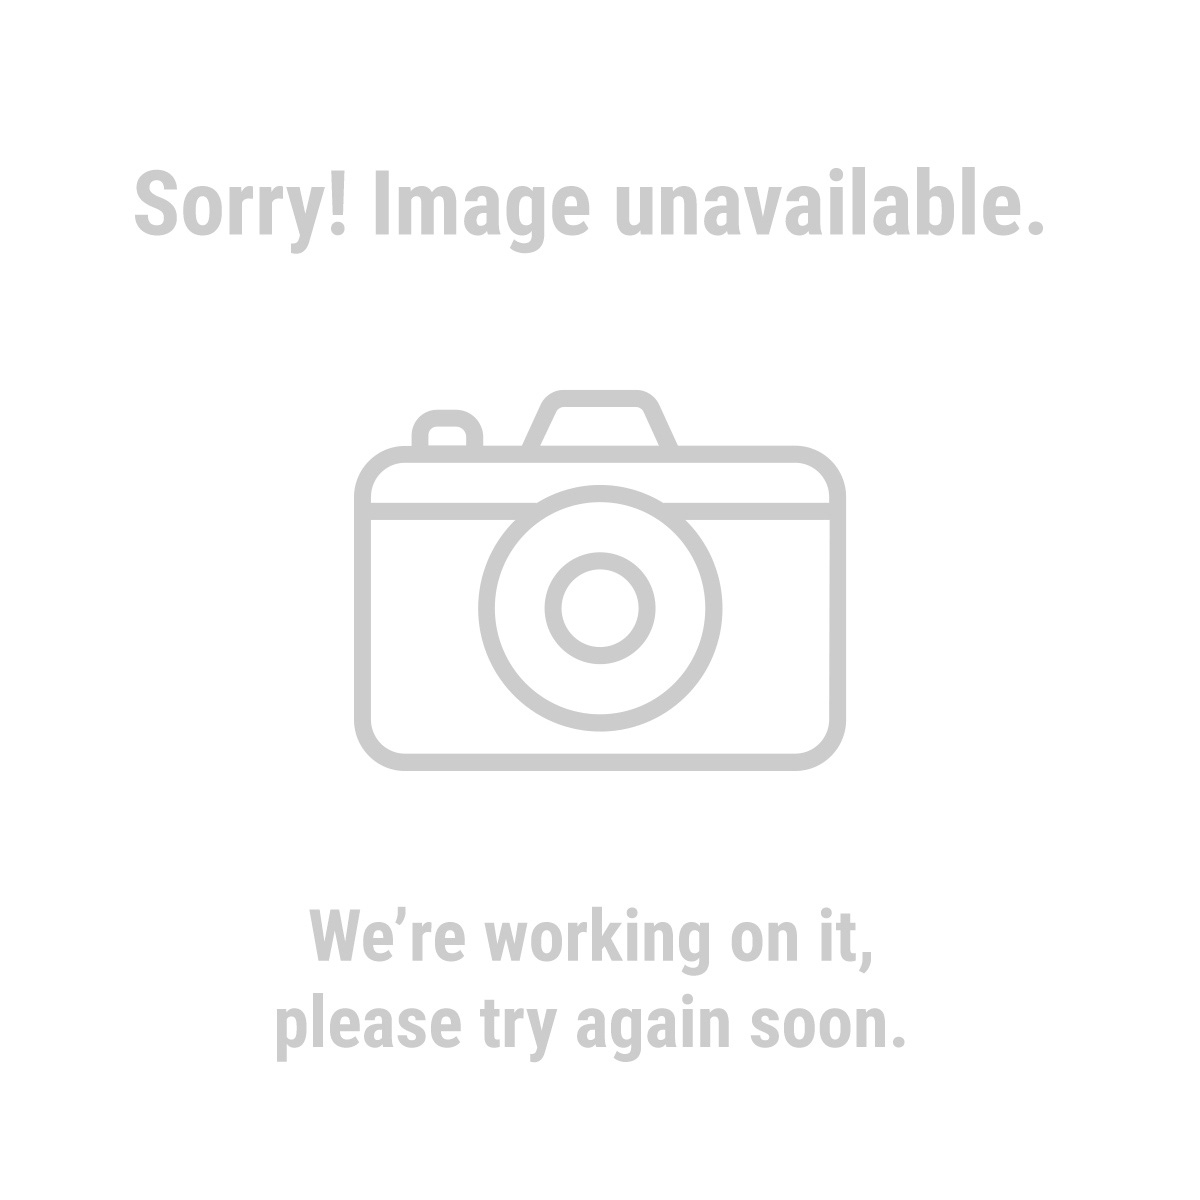 61846 5 in. Rubber Heavy Duty Swivel Caster